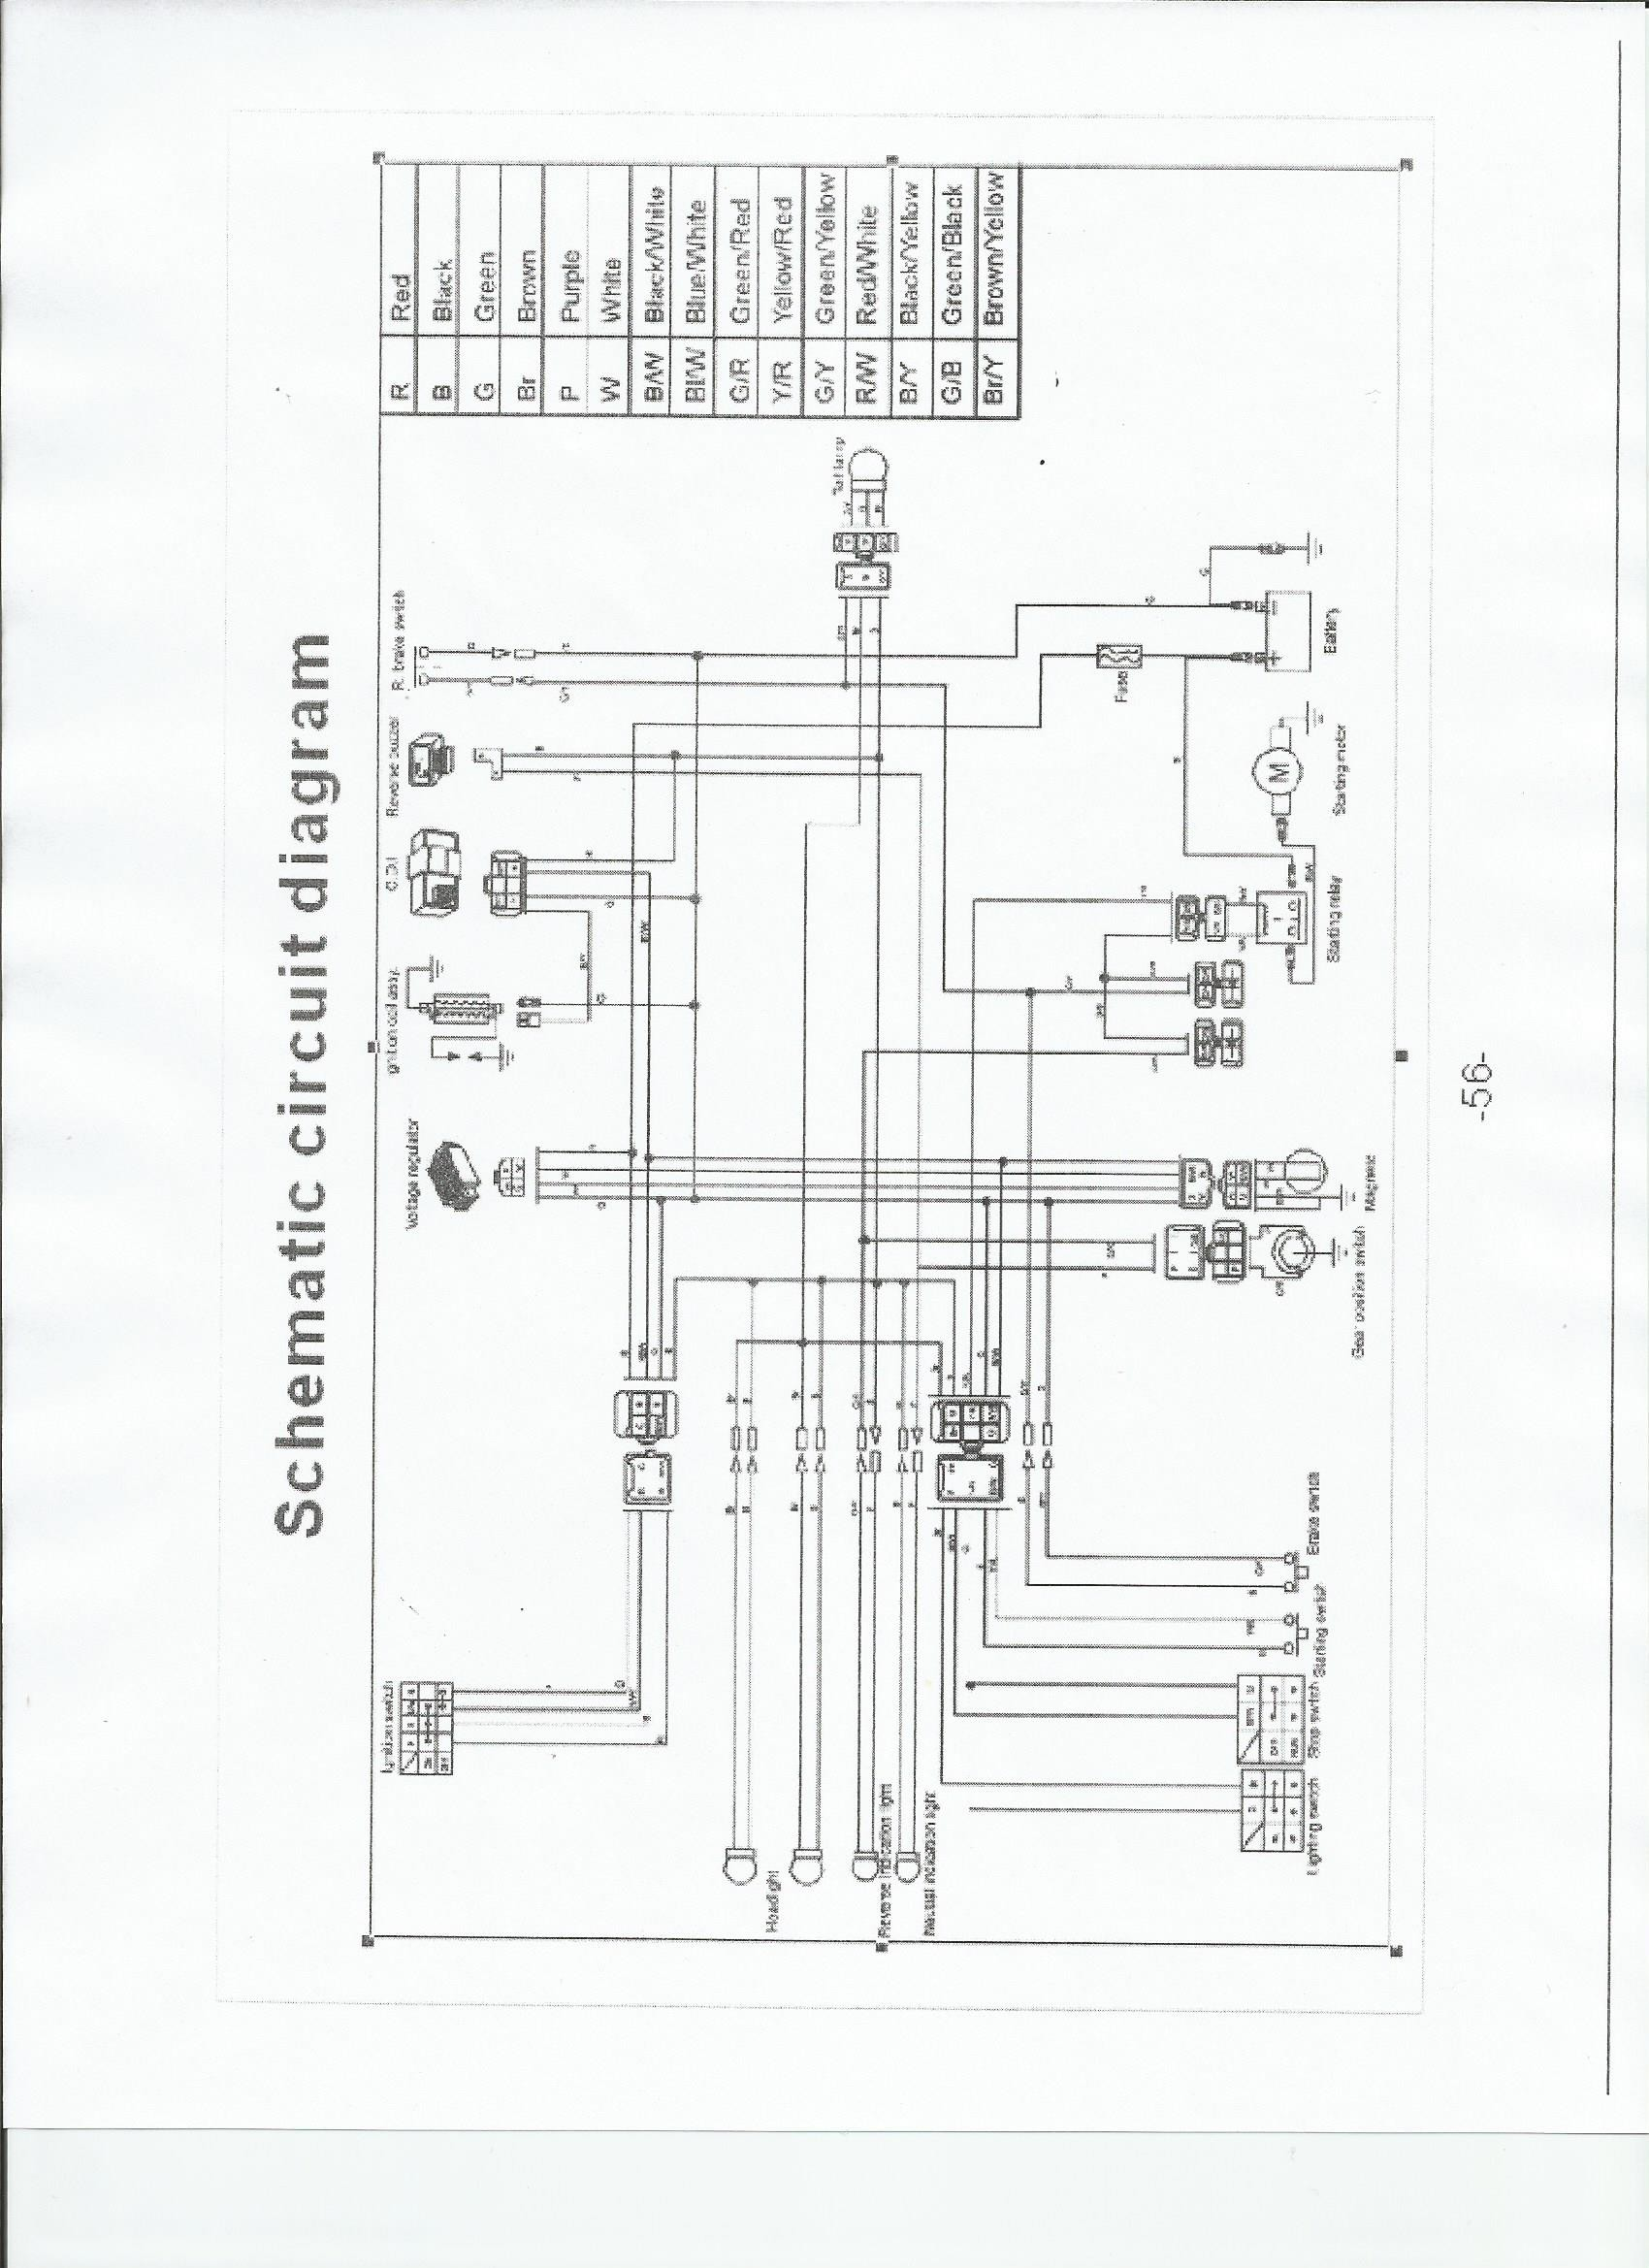 odes wiring diagram wiring diagramodes wiring diagram wiring diagramodes atv wiring diagram wiring diagram